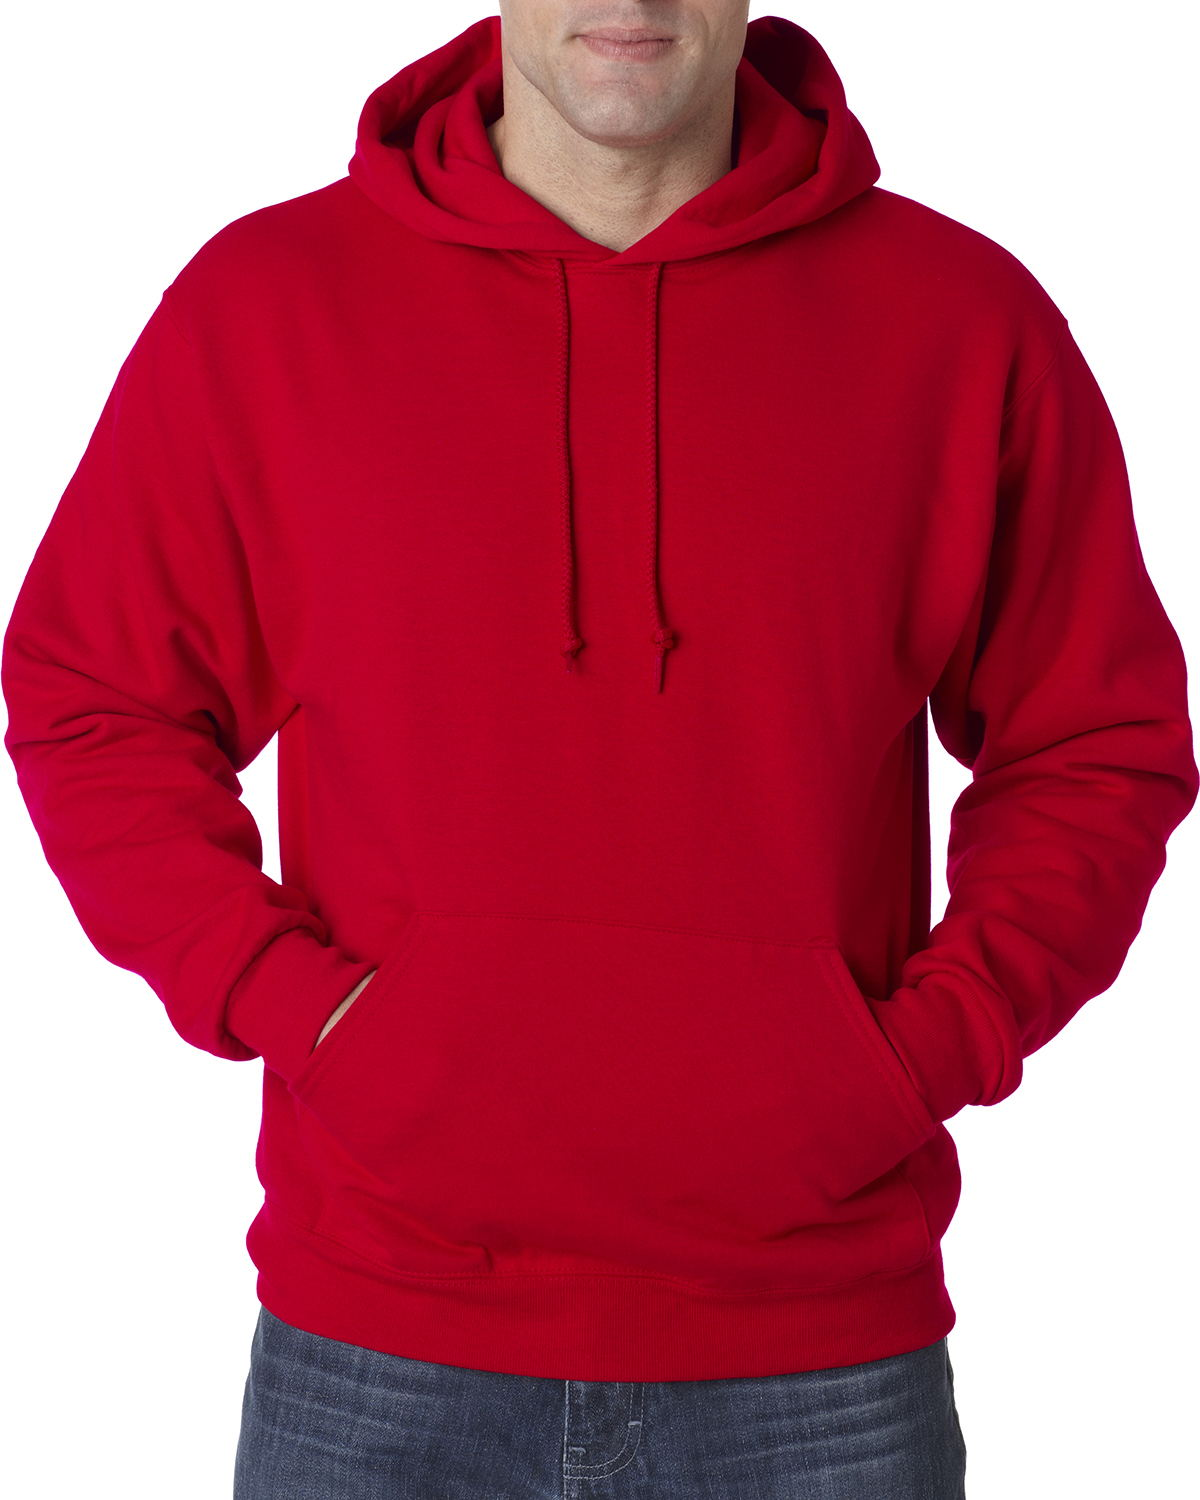 JERZEES 50/50 Hooded Pullover Sweatshirt Tall Sizes - 996MT